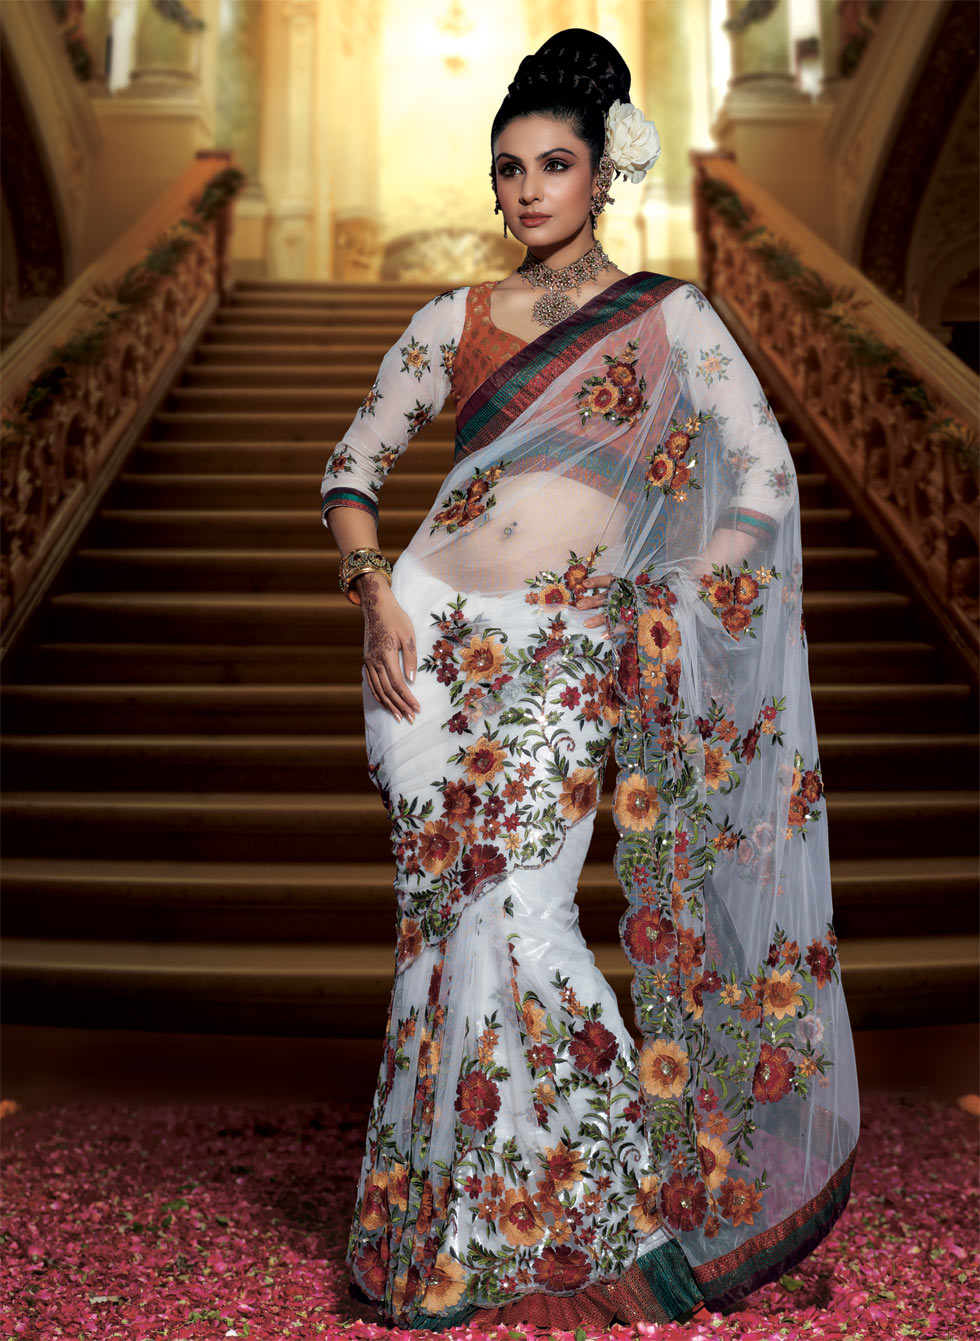 Neeta Lulla Saree Collection http://drawingcroquis.blogspot.com/2011/12/neeta-lulla-saree-collectiondesigner.html